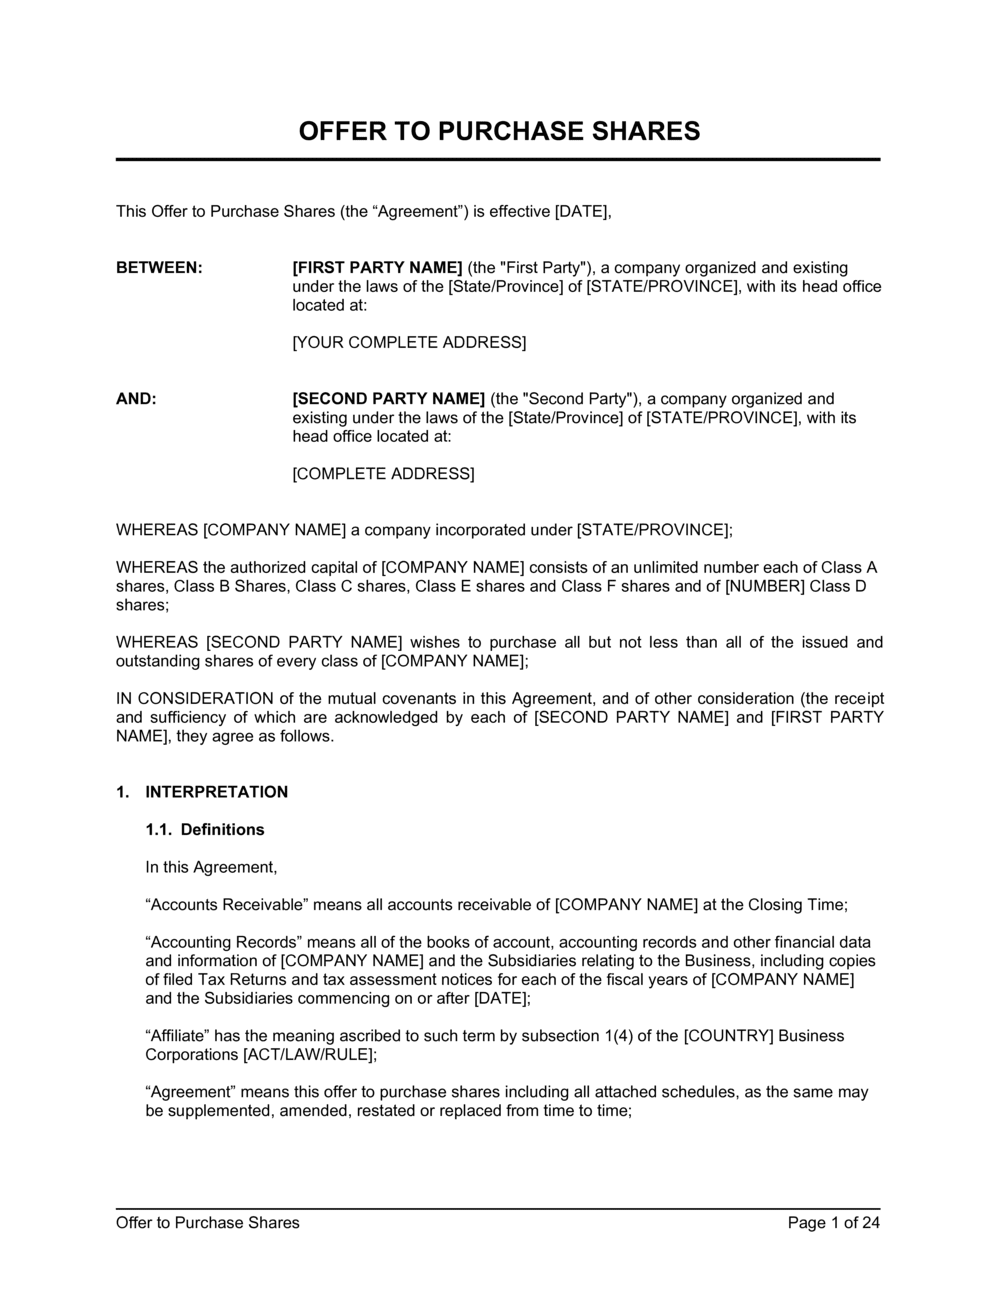 Business-in-a-Box's Offer to Purchase Shares Agreement Venture Capital Template